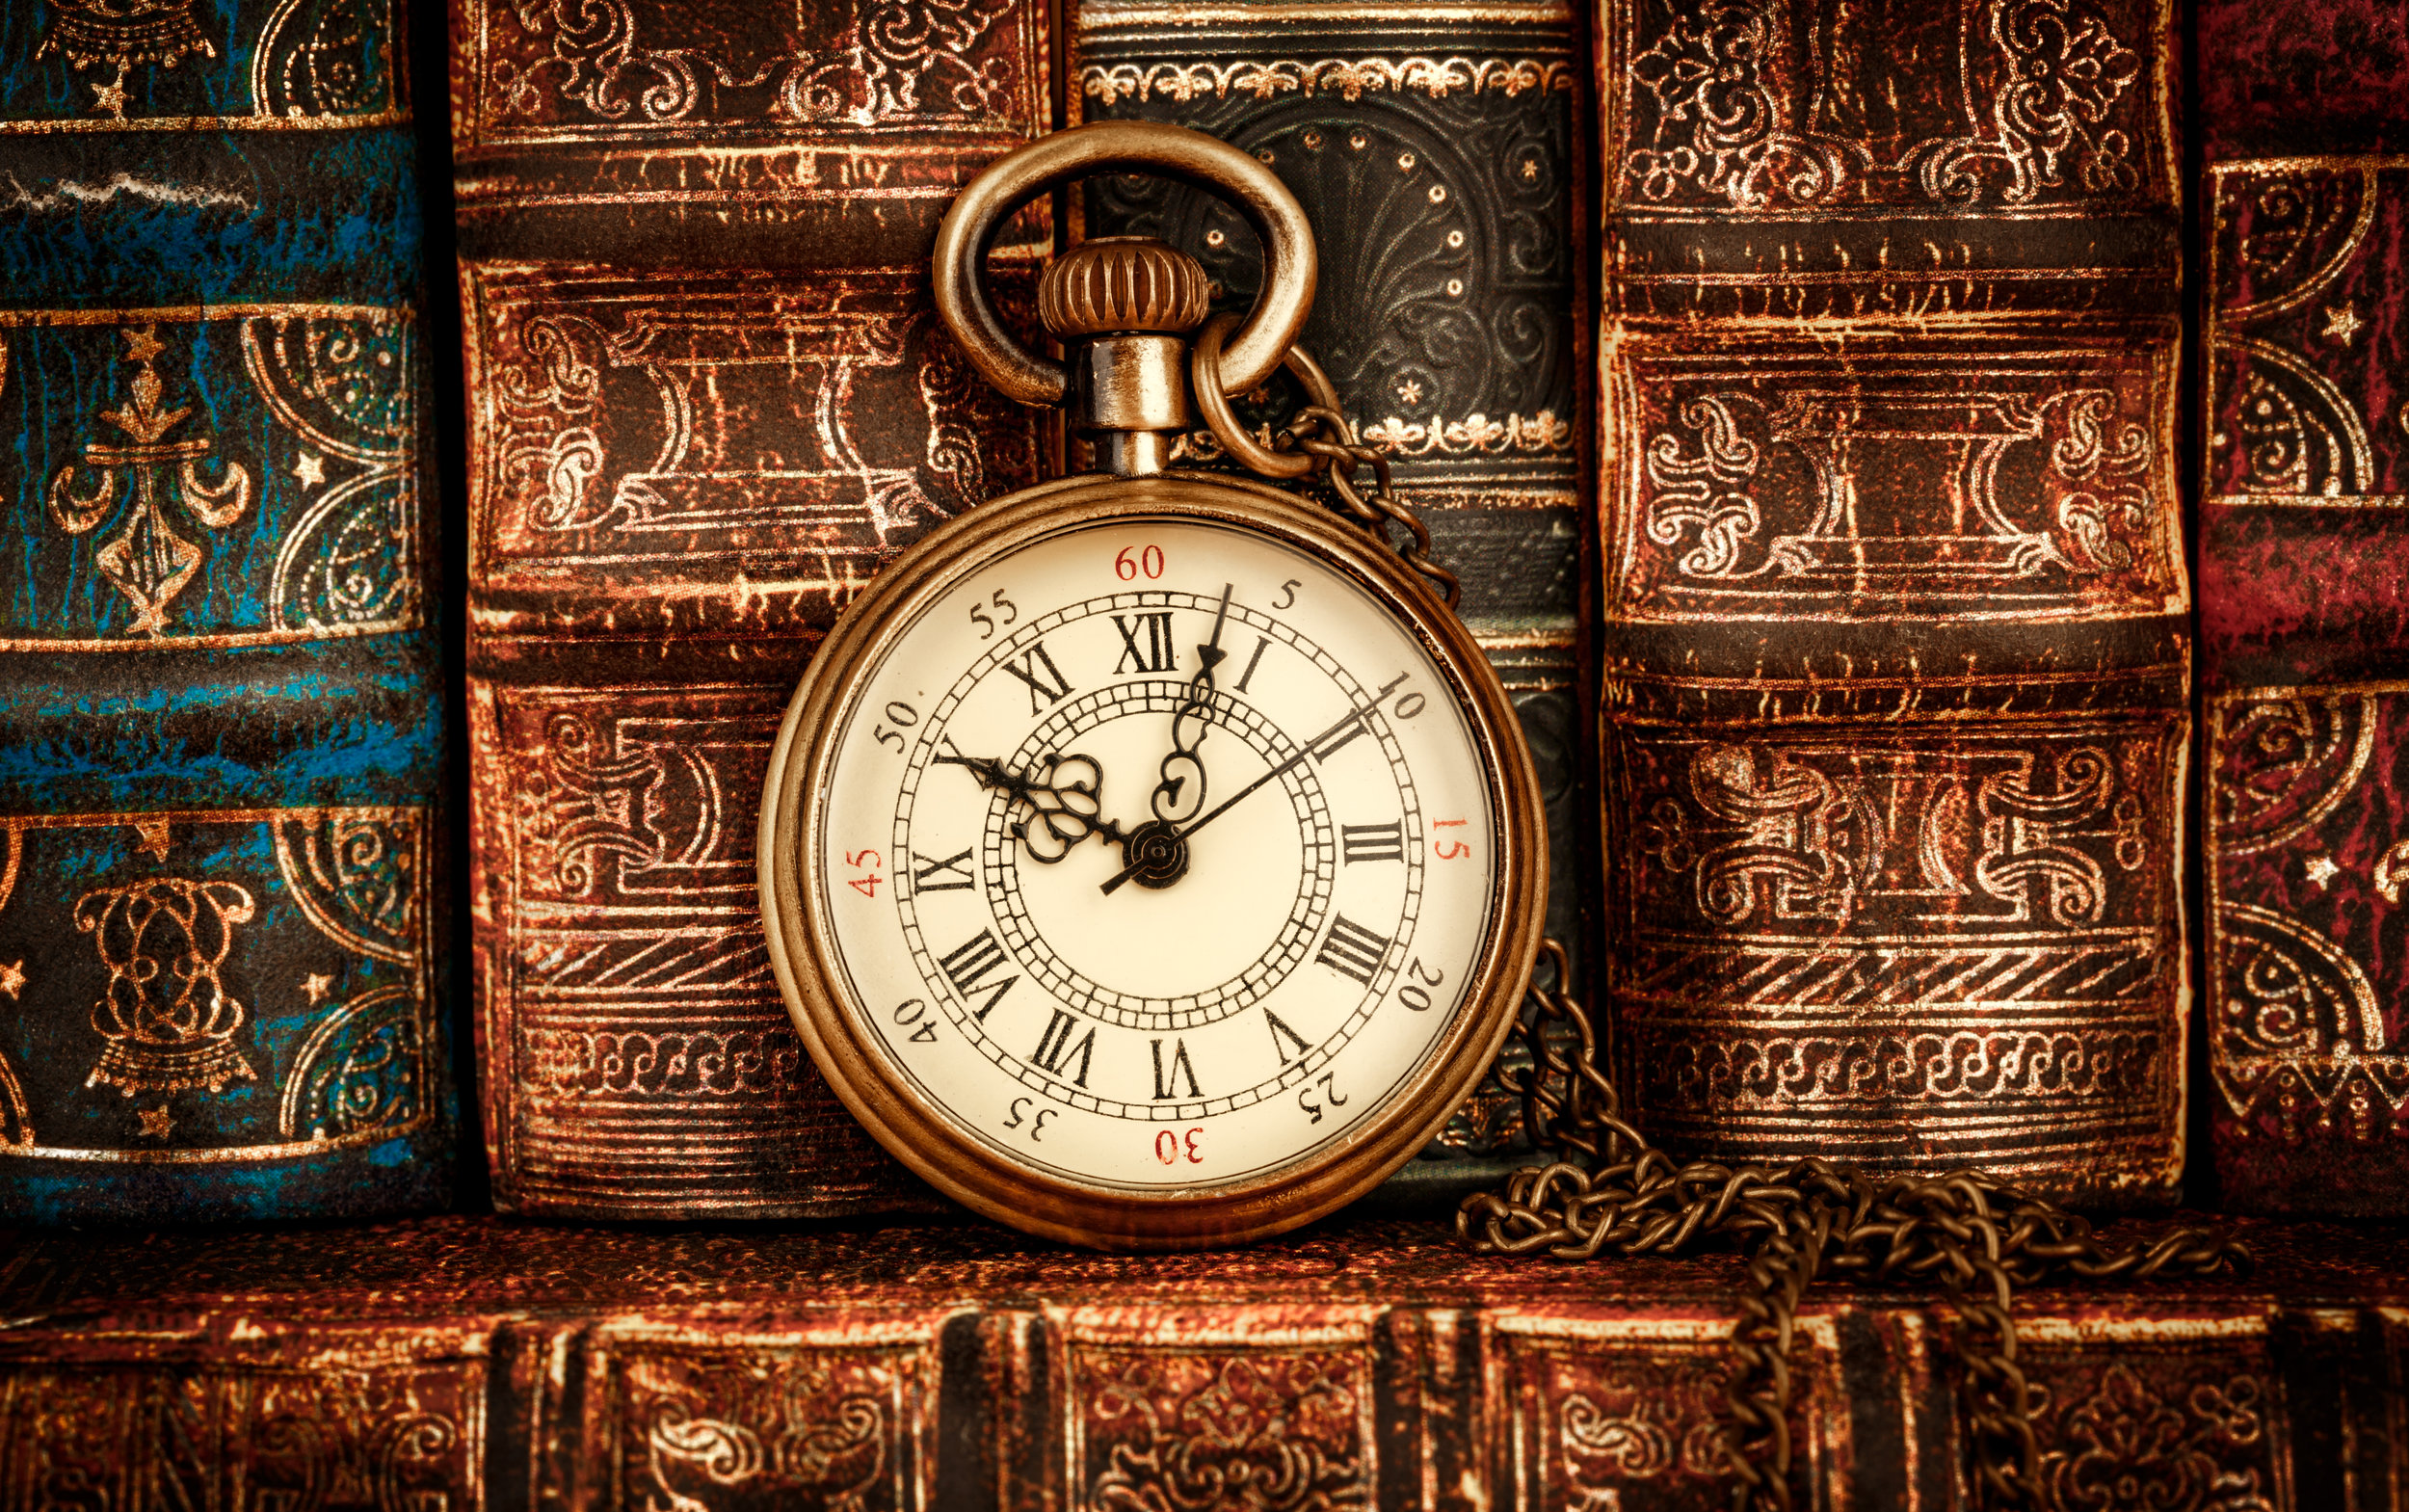 vintage-pocket-watch-still-life-PCTZNR8.jpg